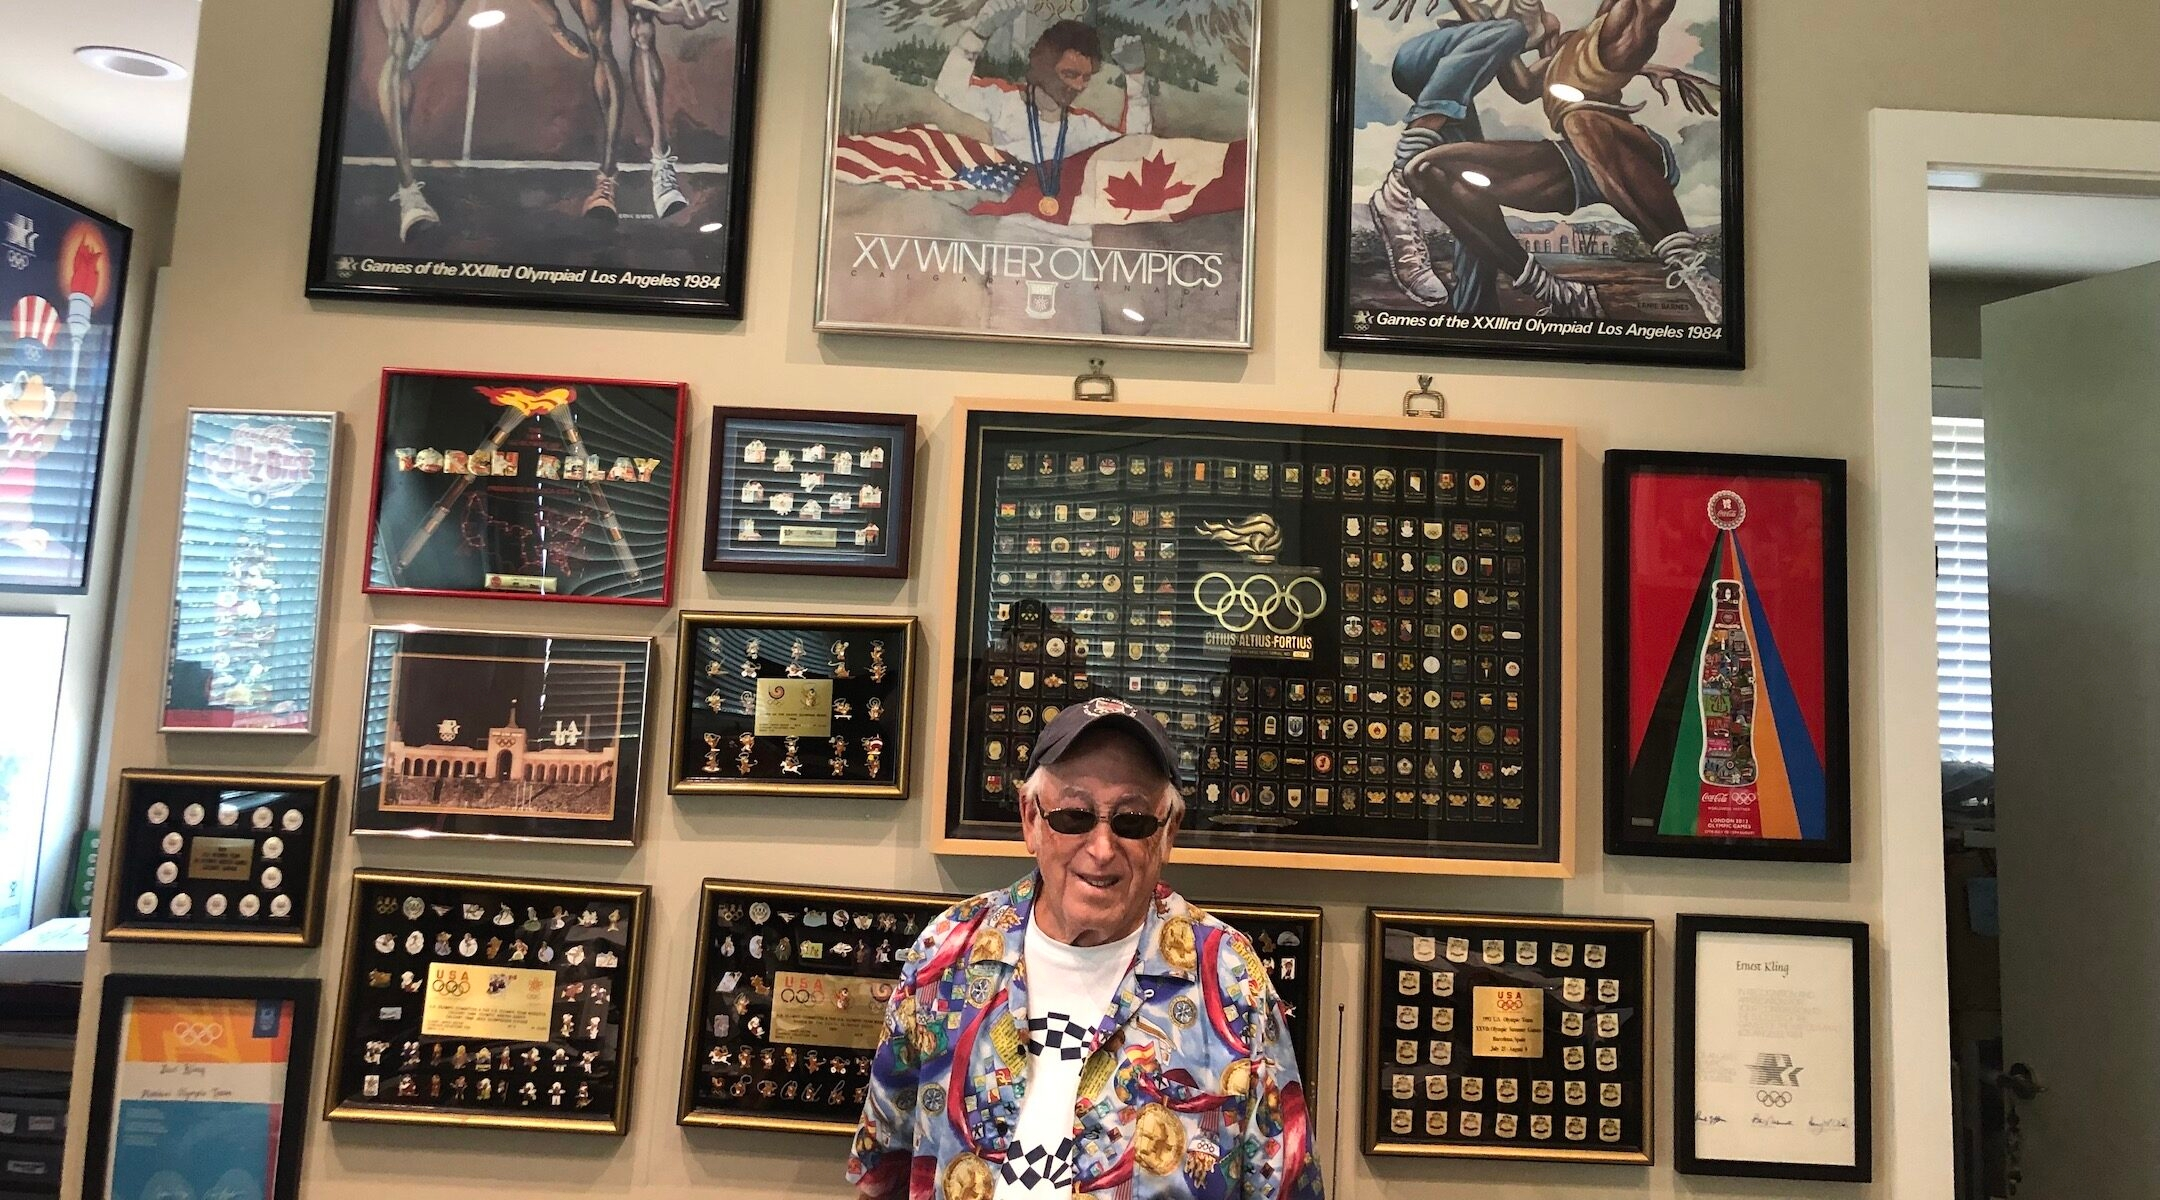 Sidney Marantz boasts a collection of over 12,000 Olympic pins